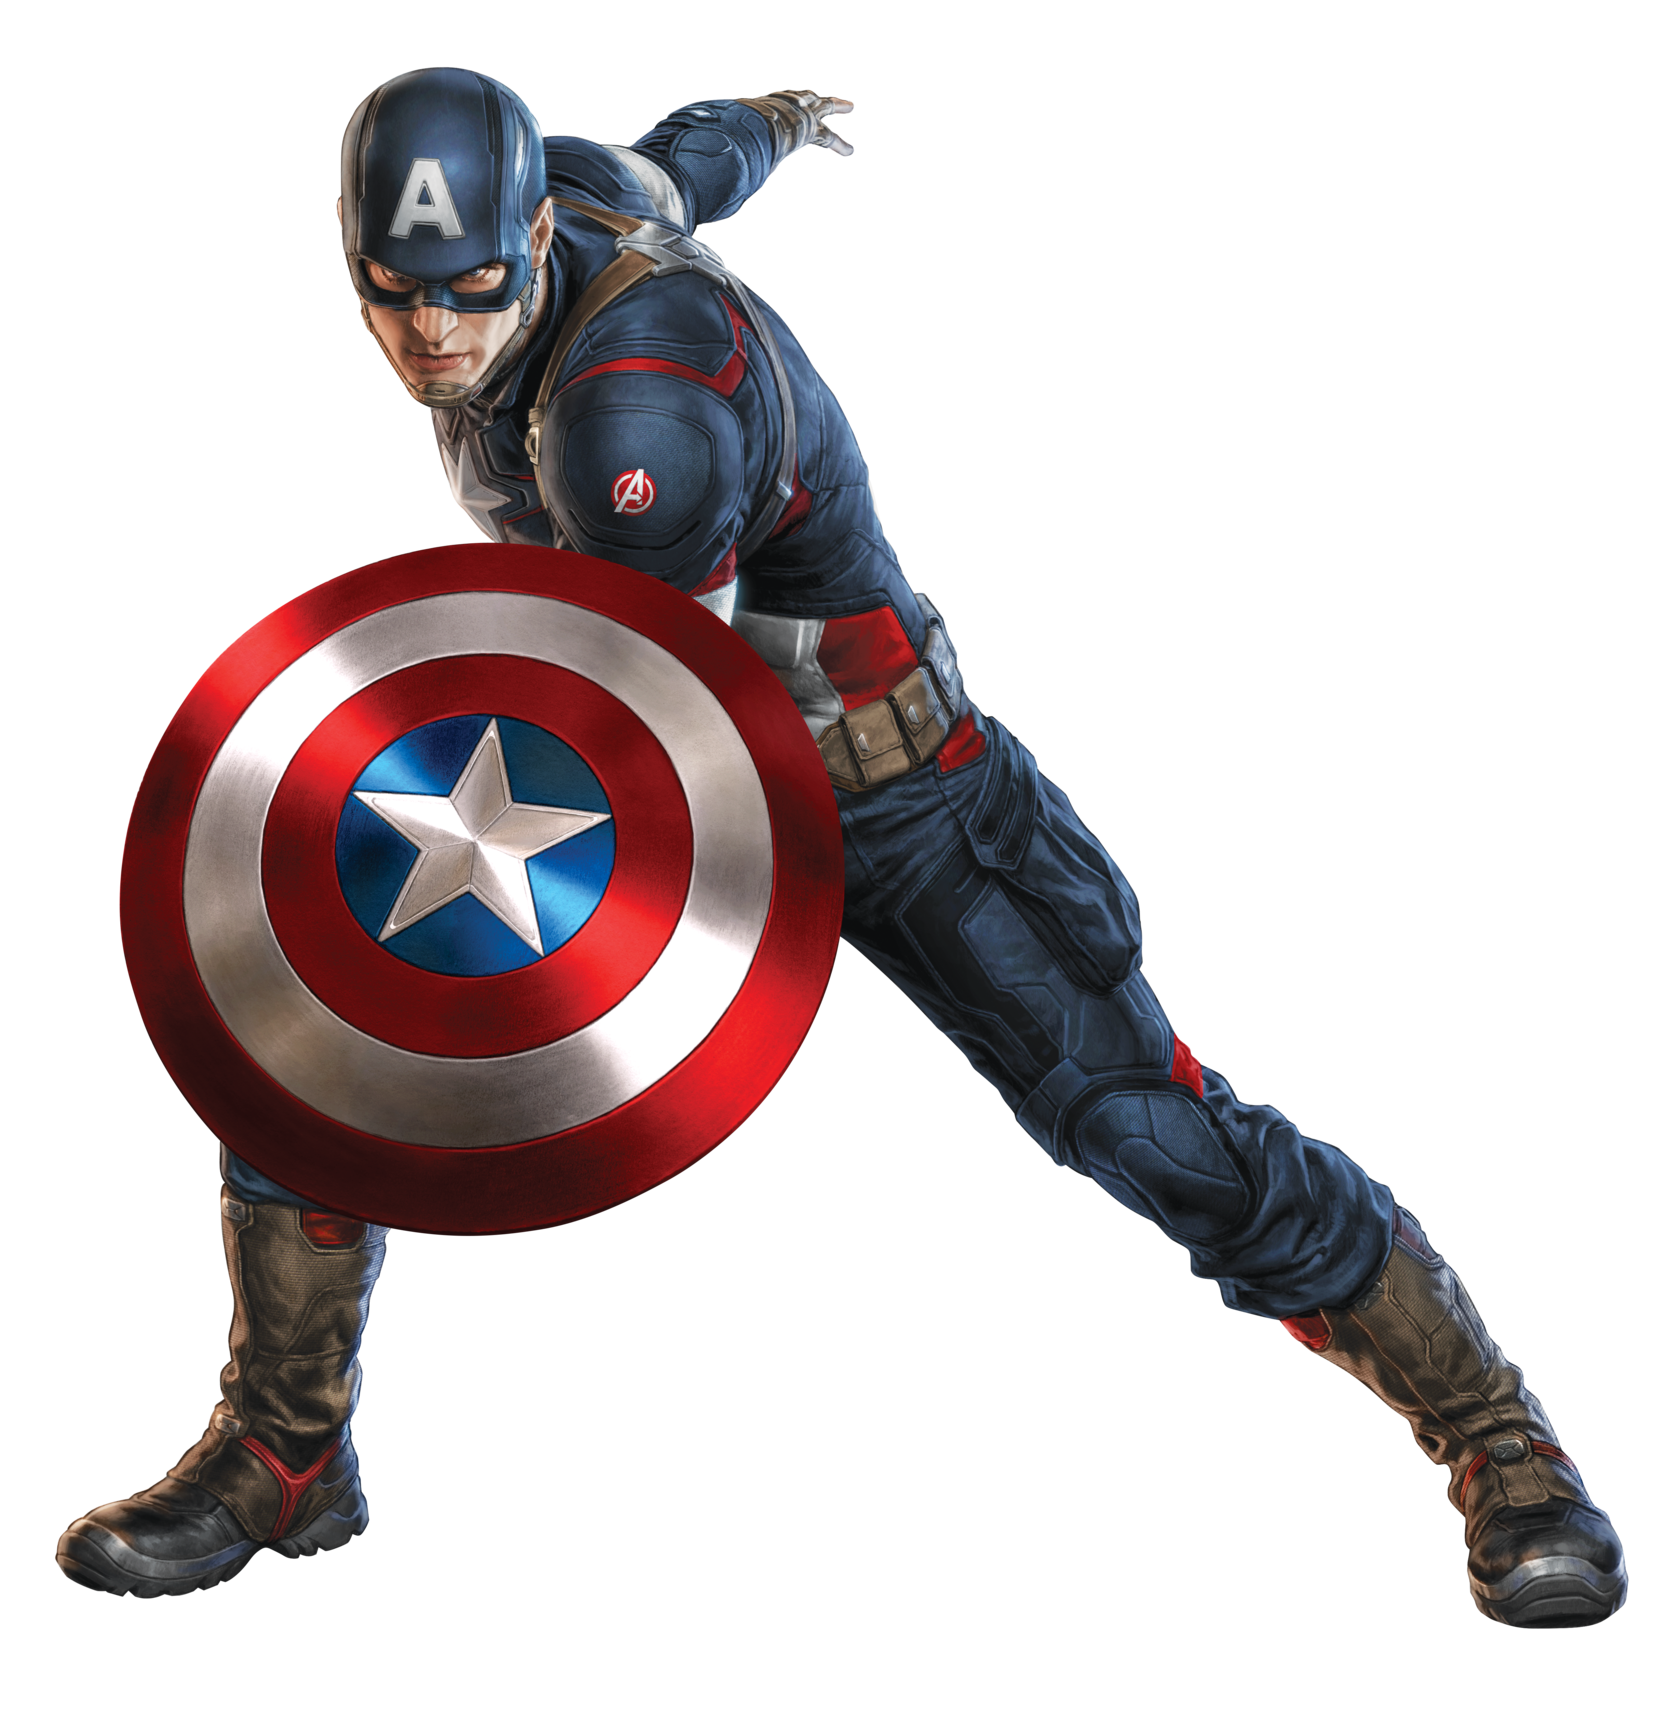 Captain America Picture PNG Image - Captian America HD PNG